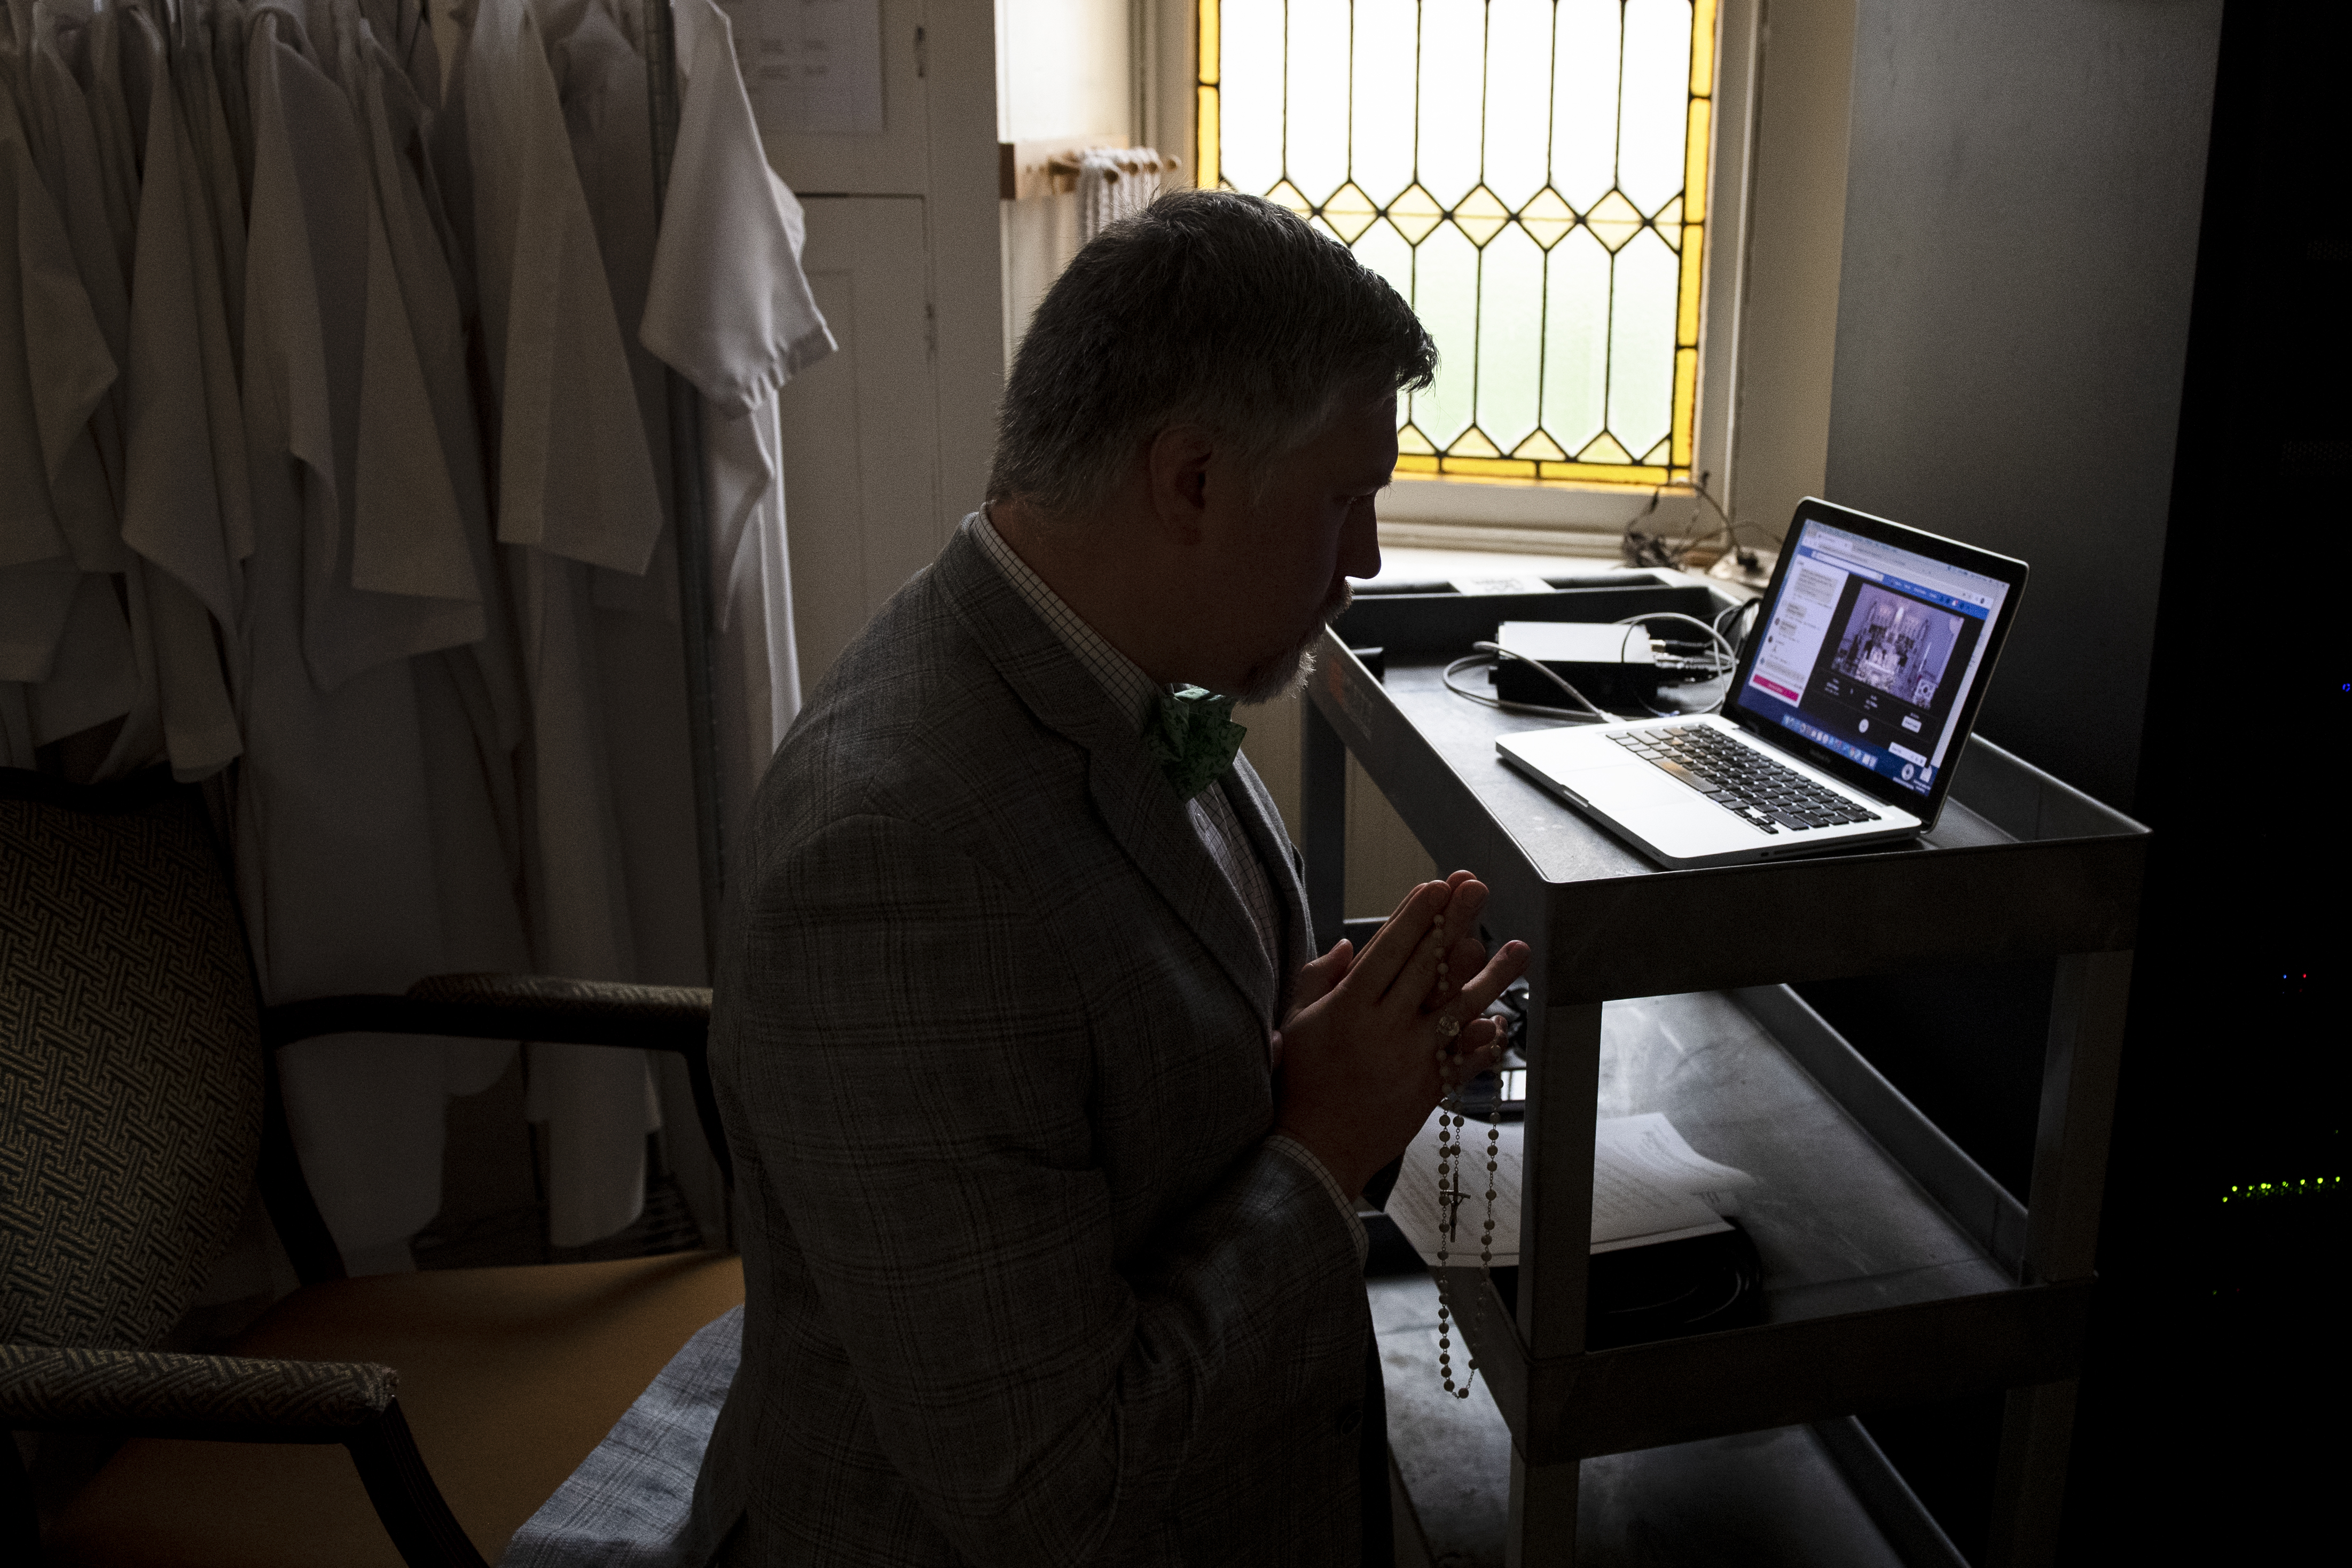 Otto Beck prays as he monitors a livestream of an Easter Vigil Mass in a parlor adjacent to the sanctuary at Saint Peter's Church on Capitol Hill without worshipers due to the coronavirus outbreak on Sunday, April 12, 2020.